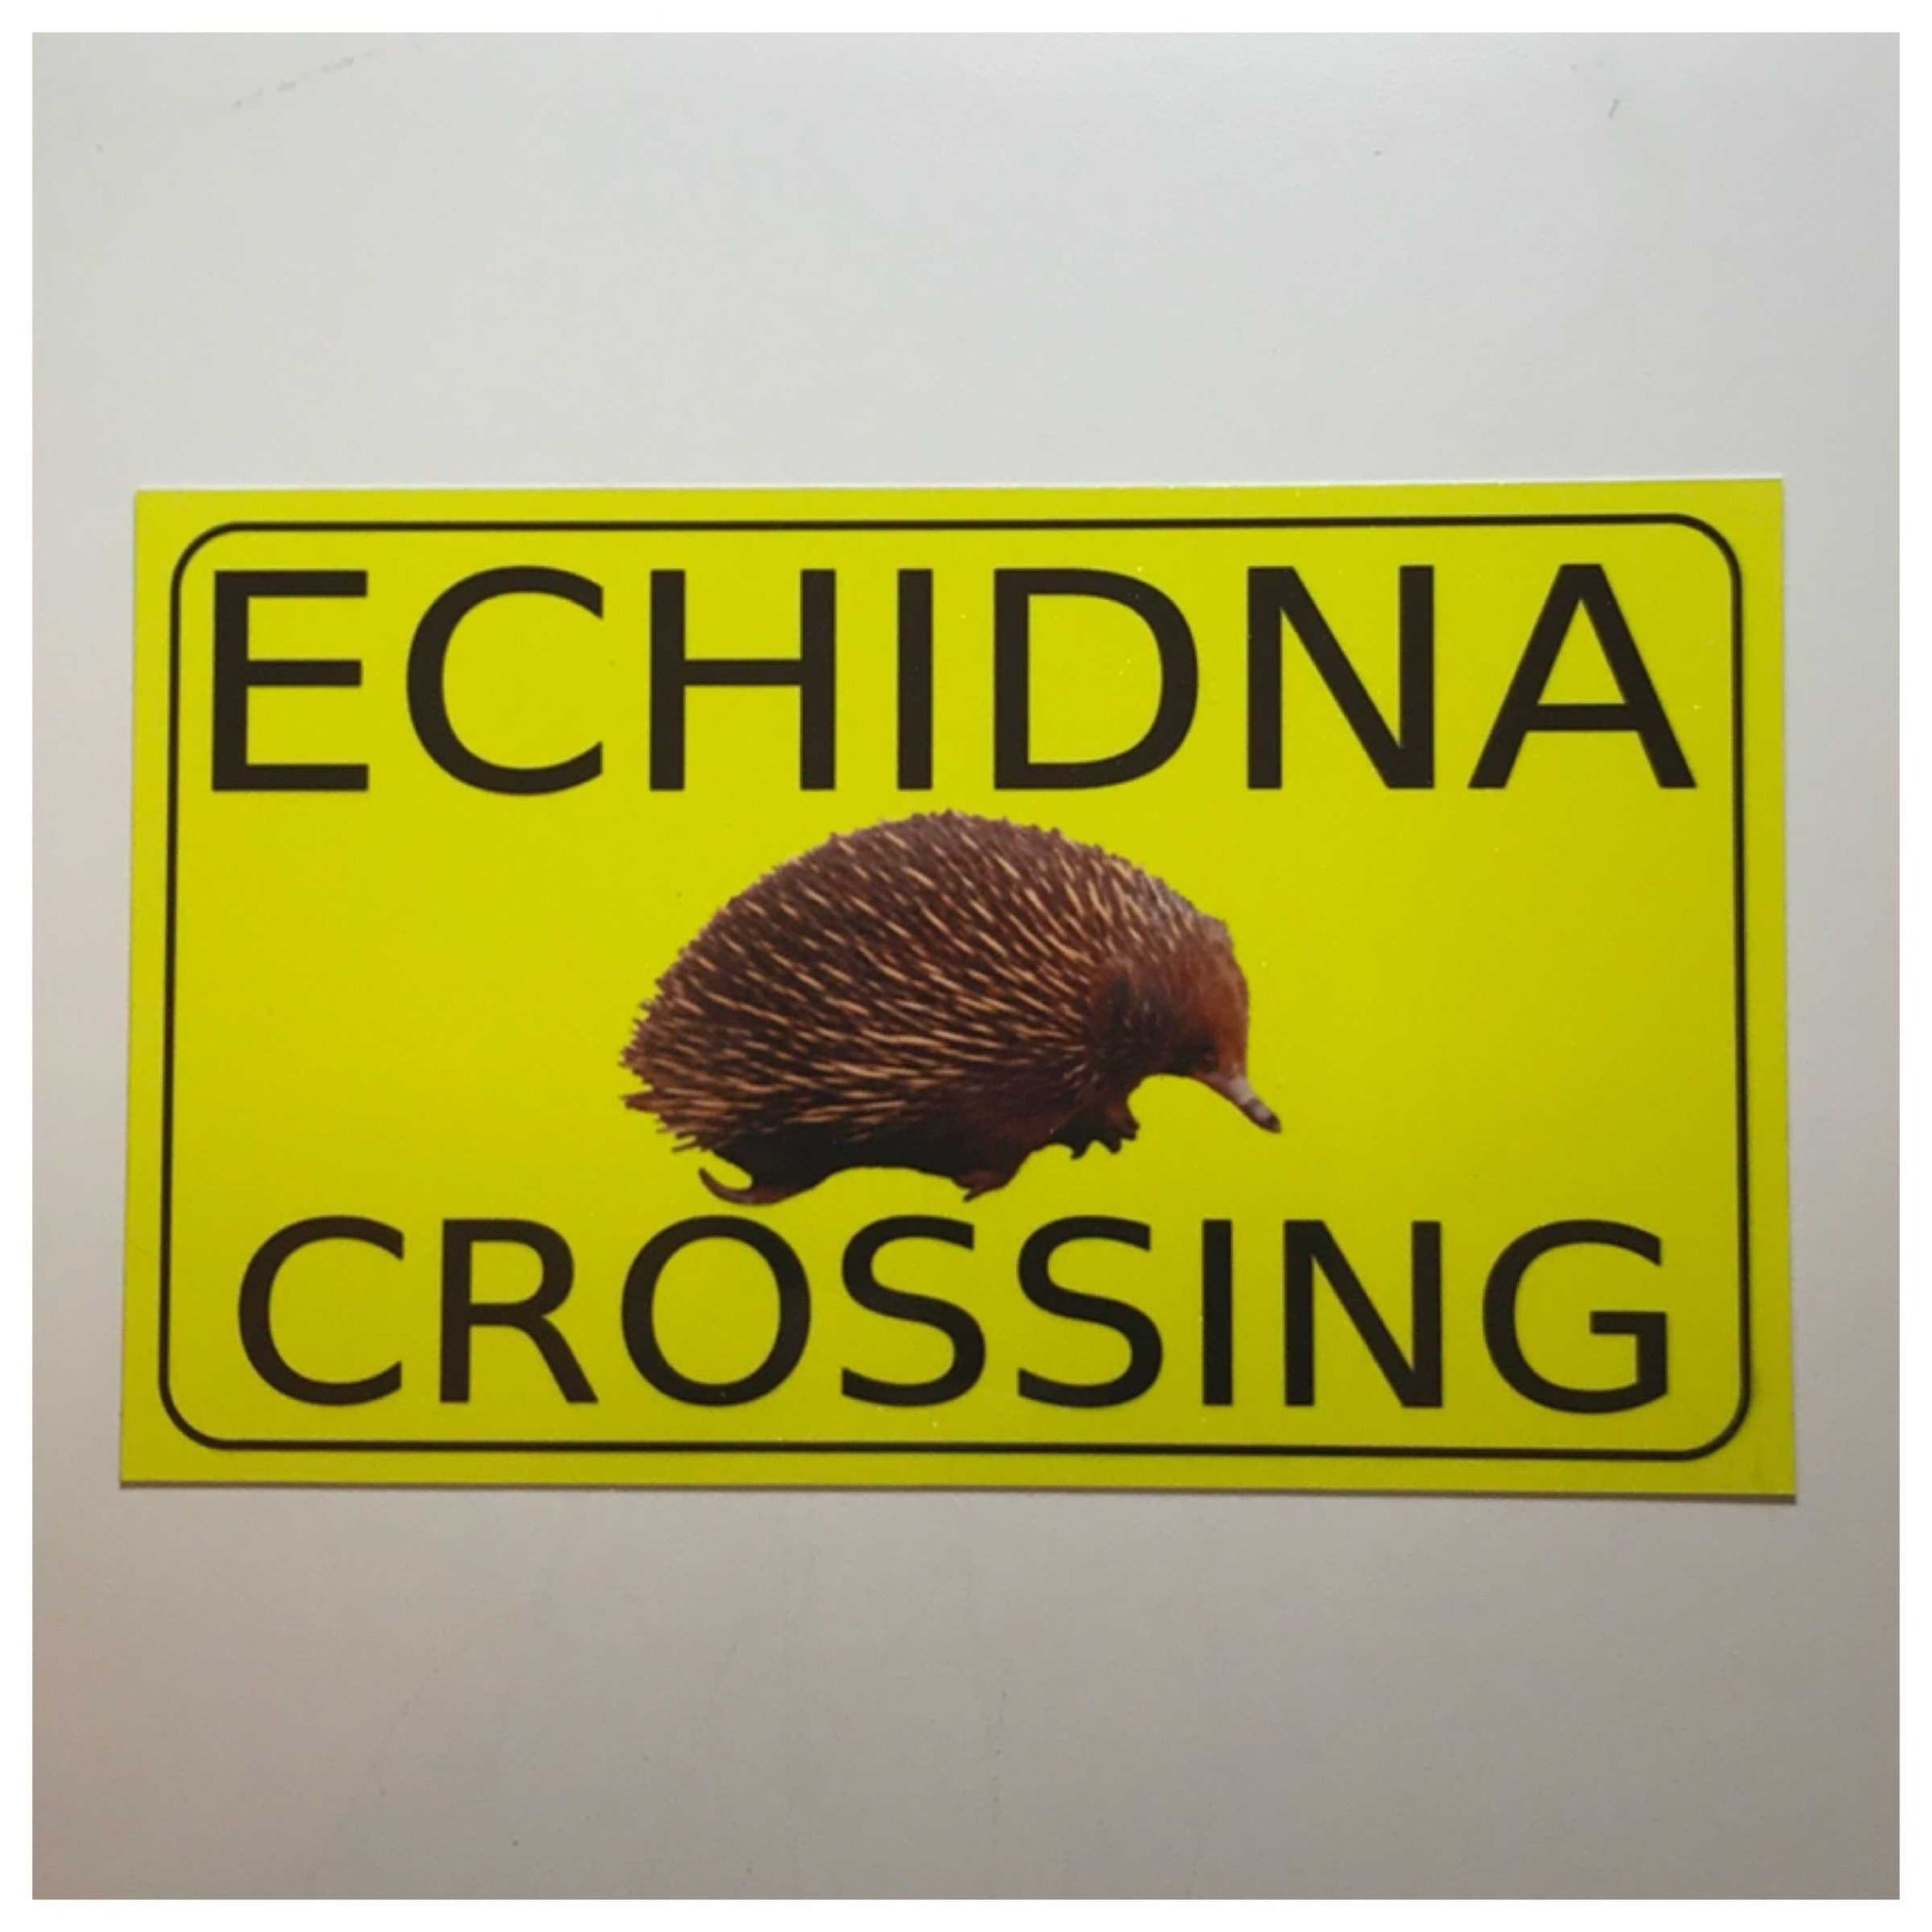 Echidna Crossing Sign - The Renmy Store